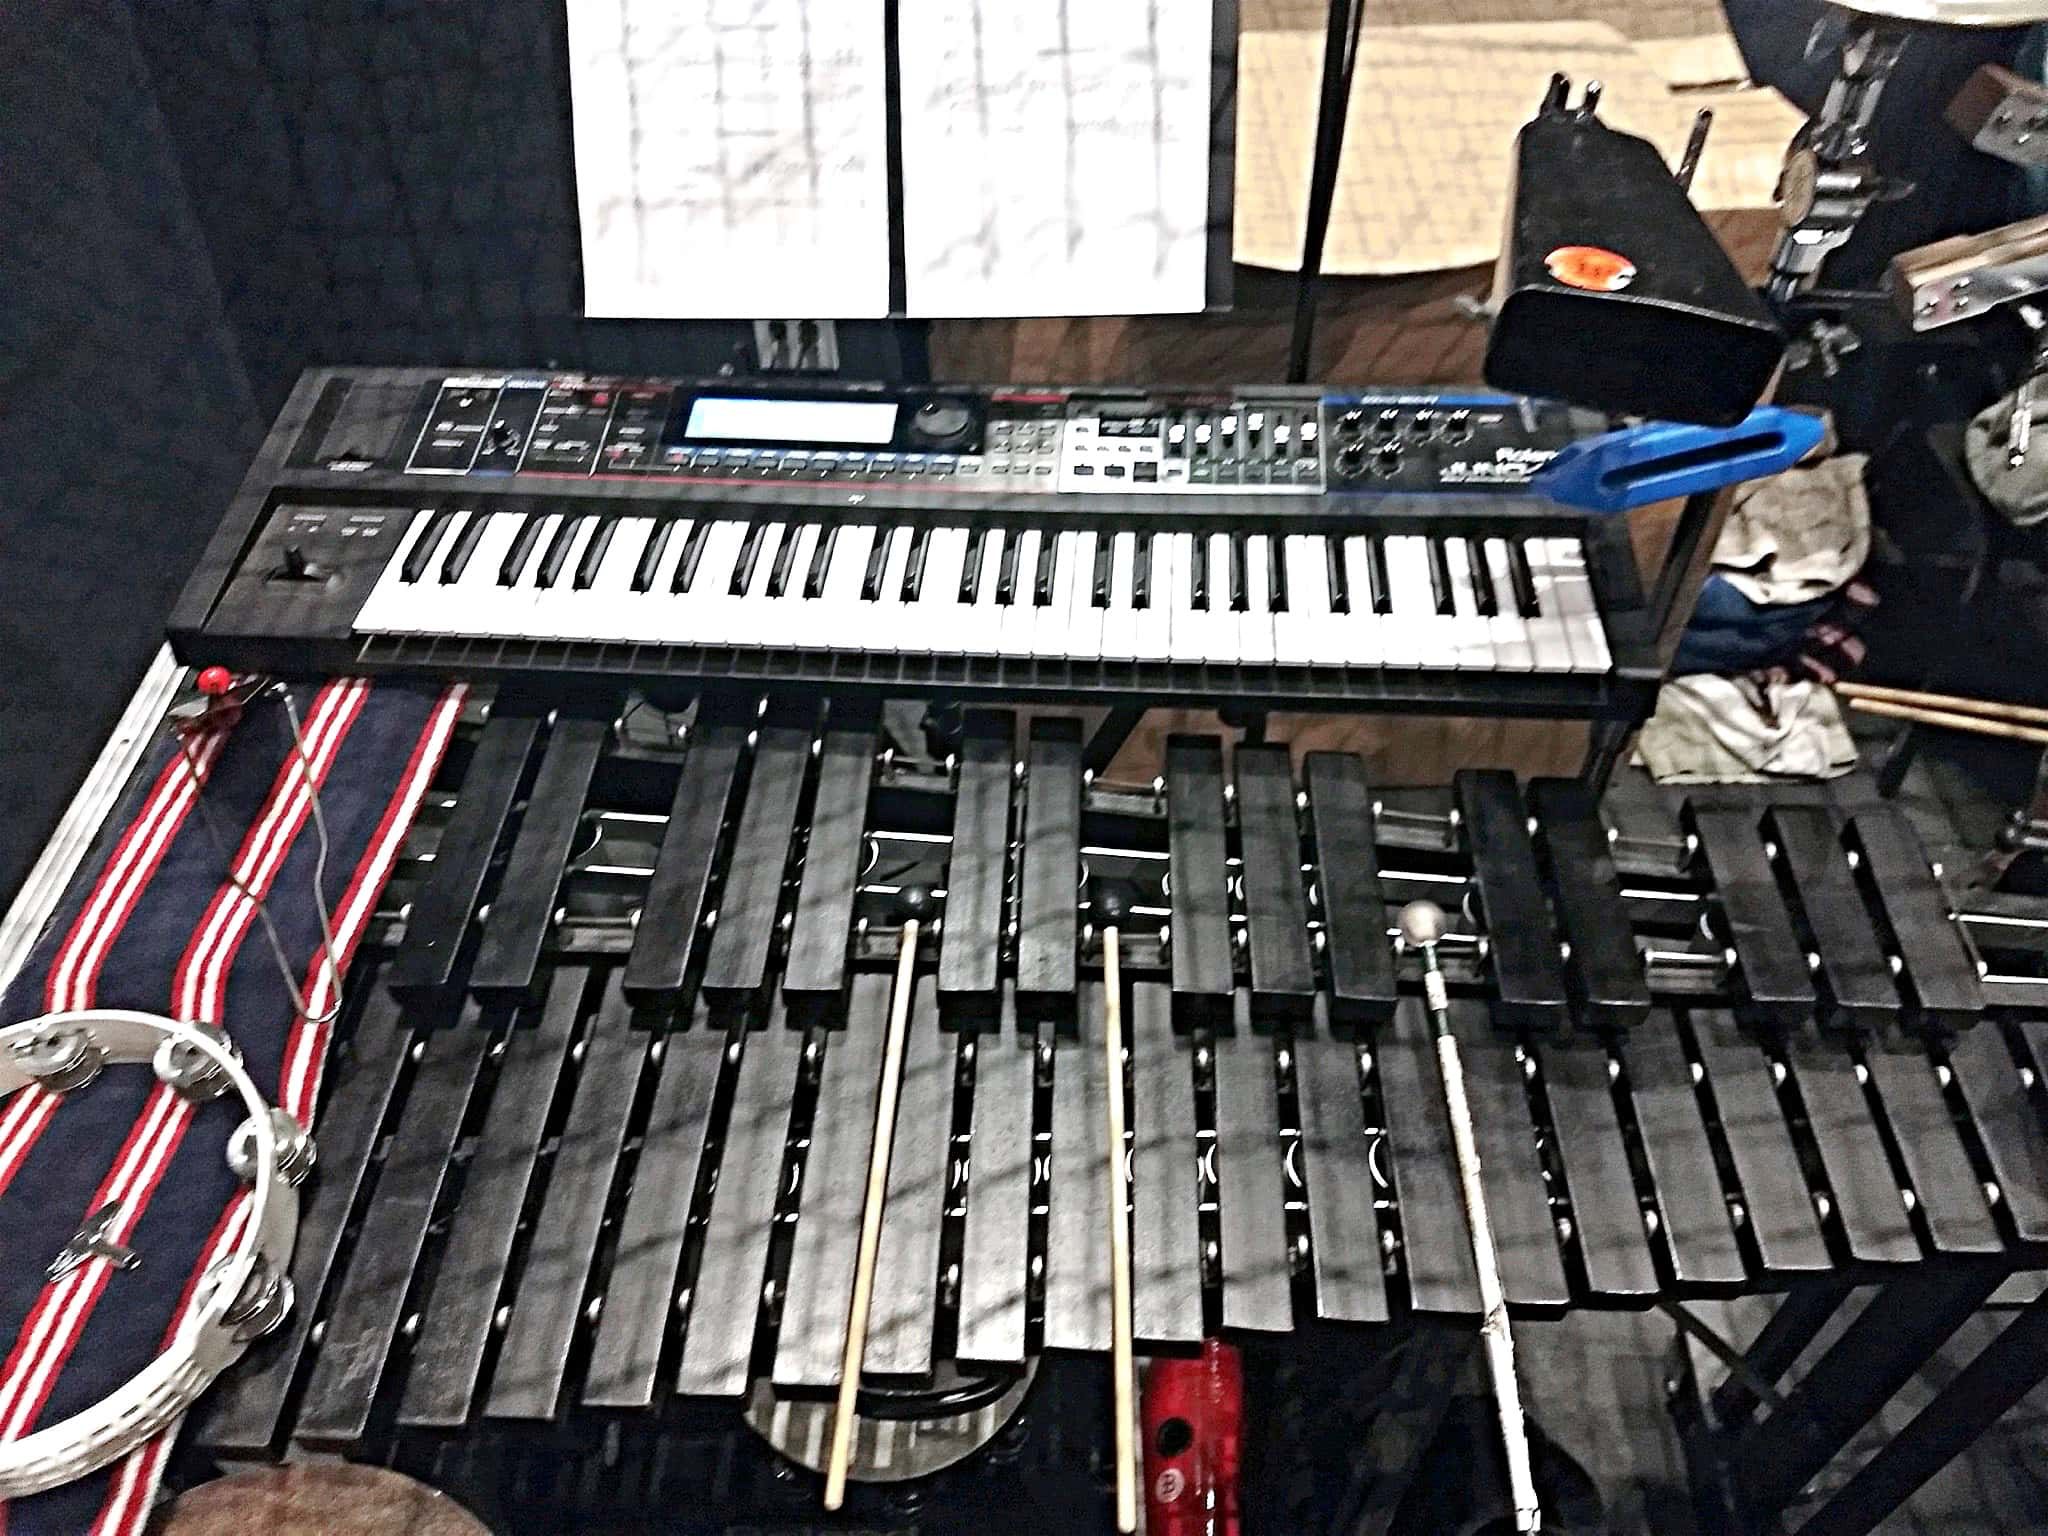 Rex Lycan's percussion setup for The Little Mermaid at the Howard Brubeck Theatre in San Marcos, California.